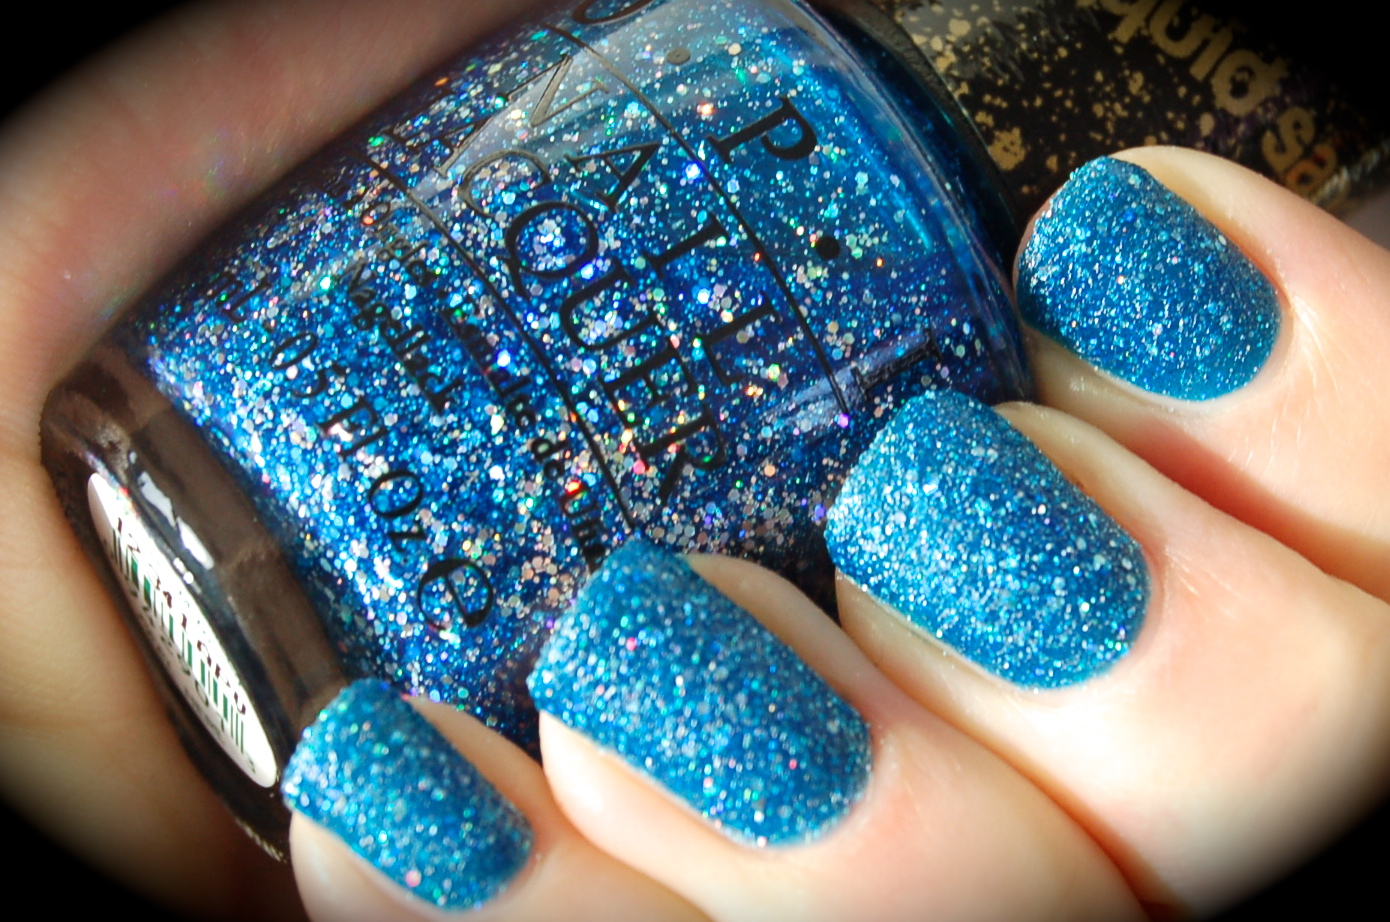 Swatch of OPI Get Your Number, bilder OPI Get Your Number, OPI MAriah Carey collection 2012, nail polish, blogg nagellack